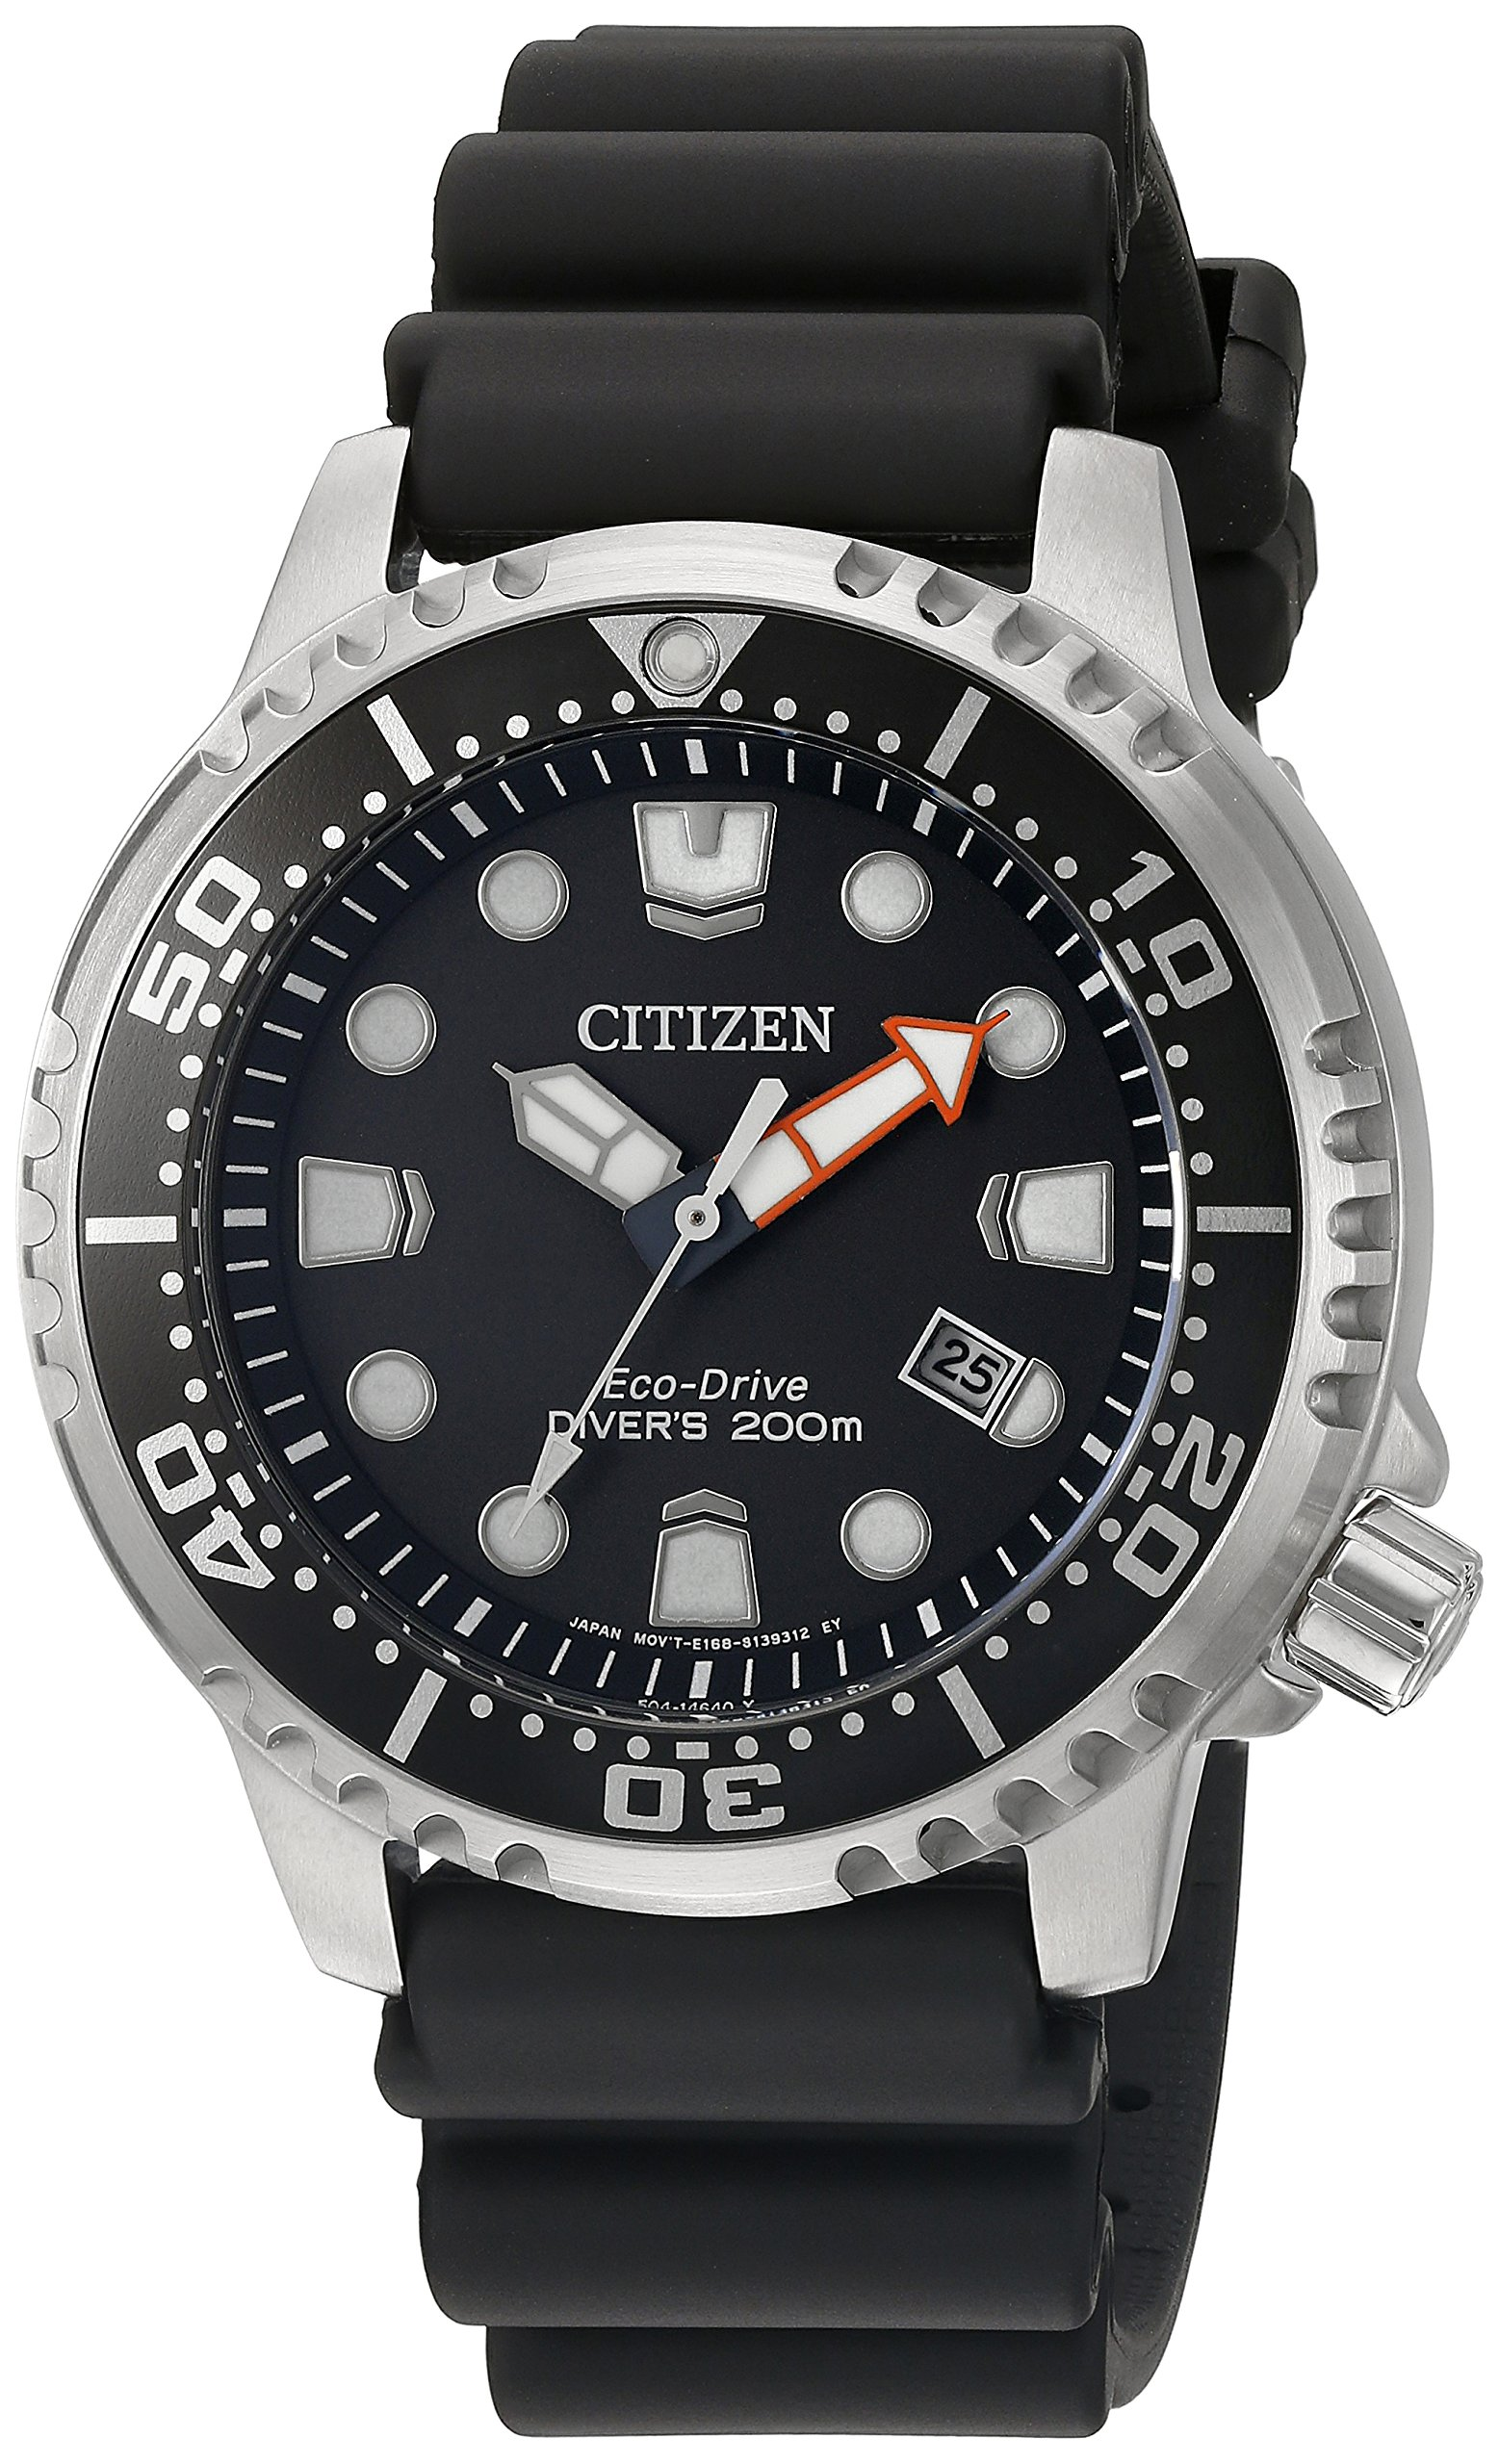 Citizen Men's Eco-Drive Promaster Diver Watch with Date, BN0150-28E by Citizen